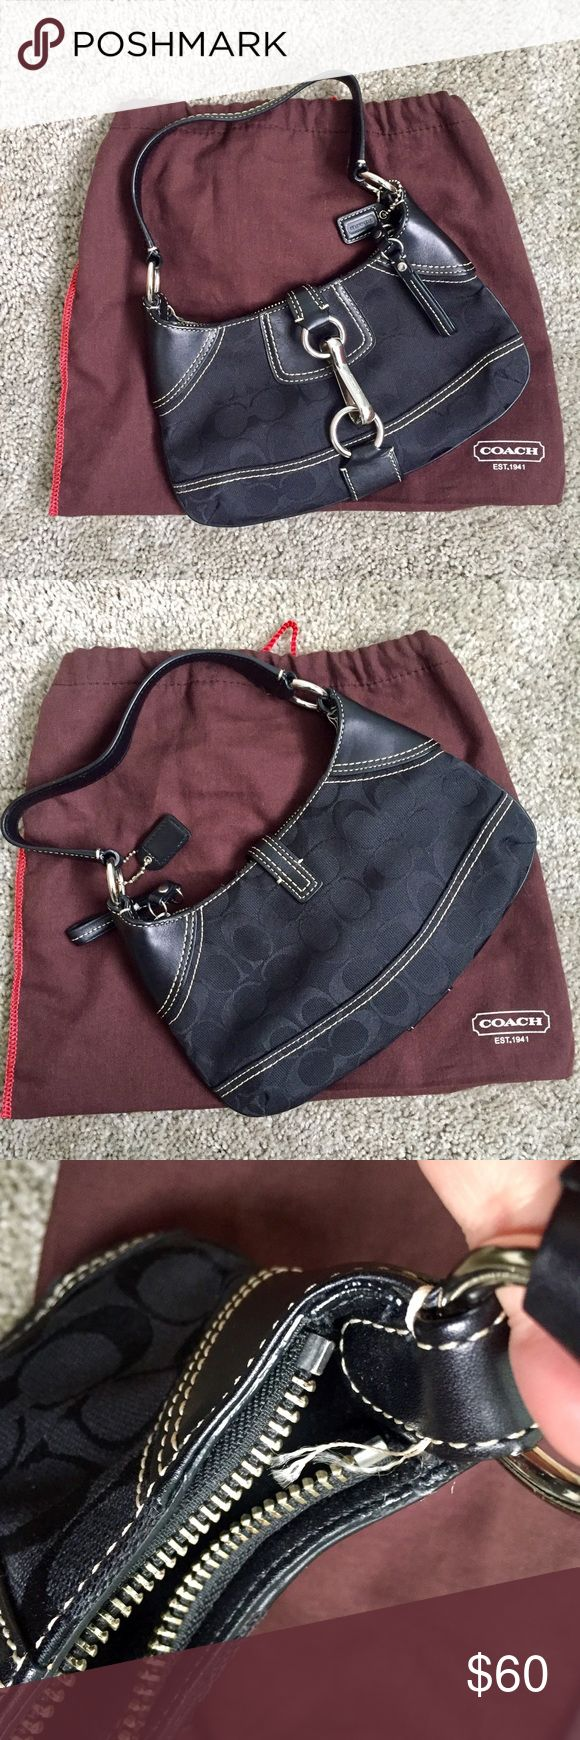 Coach Shoulder Bag w/ Clip Lock In EUC with only some frayed stiching depicted in photo. Has a zipper closure and clip lock. Comes with original dust bag. Purchased from Coach store about 8 years ago so I don't recall the model name. 🚫No trade Coach Bags